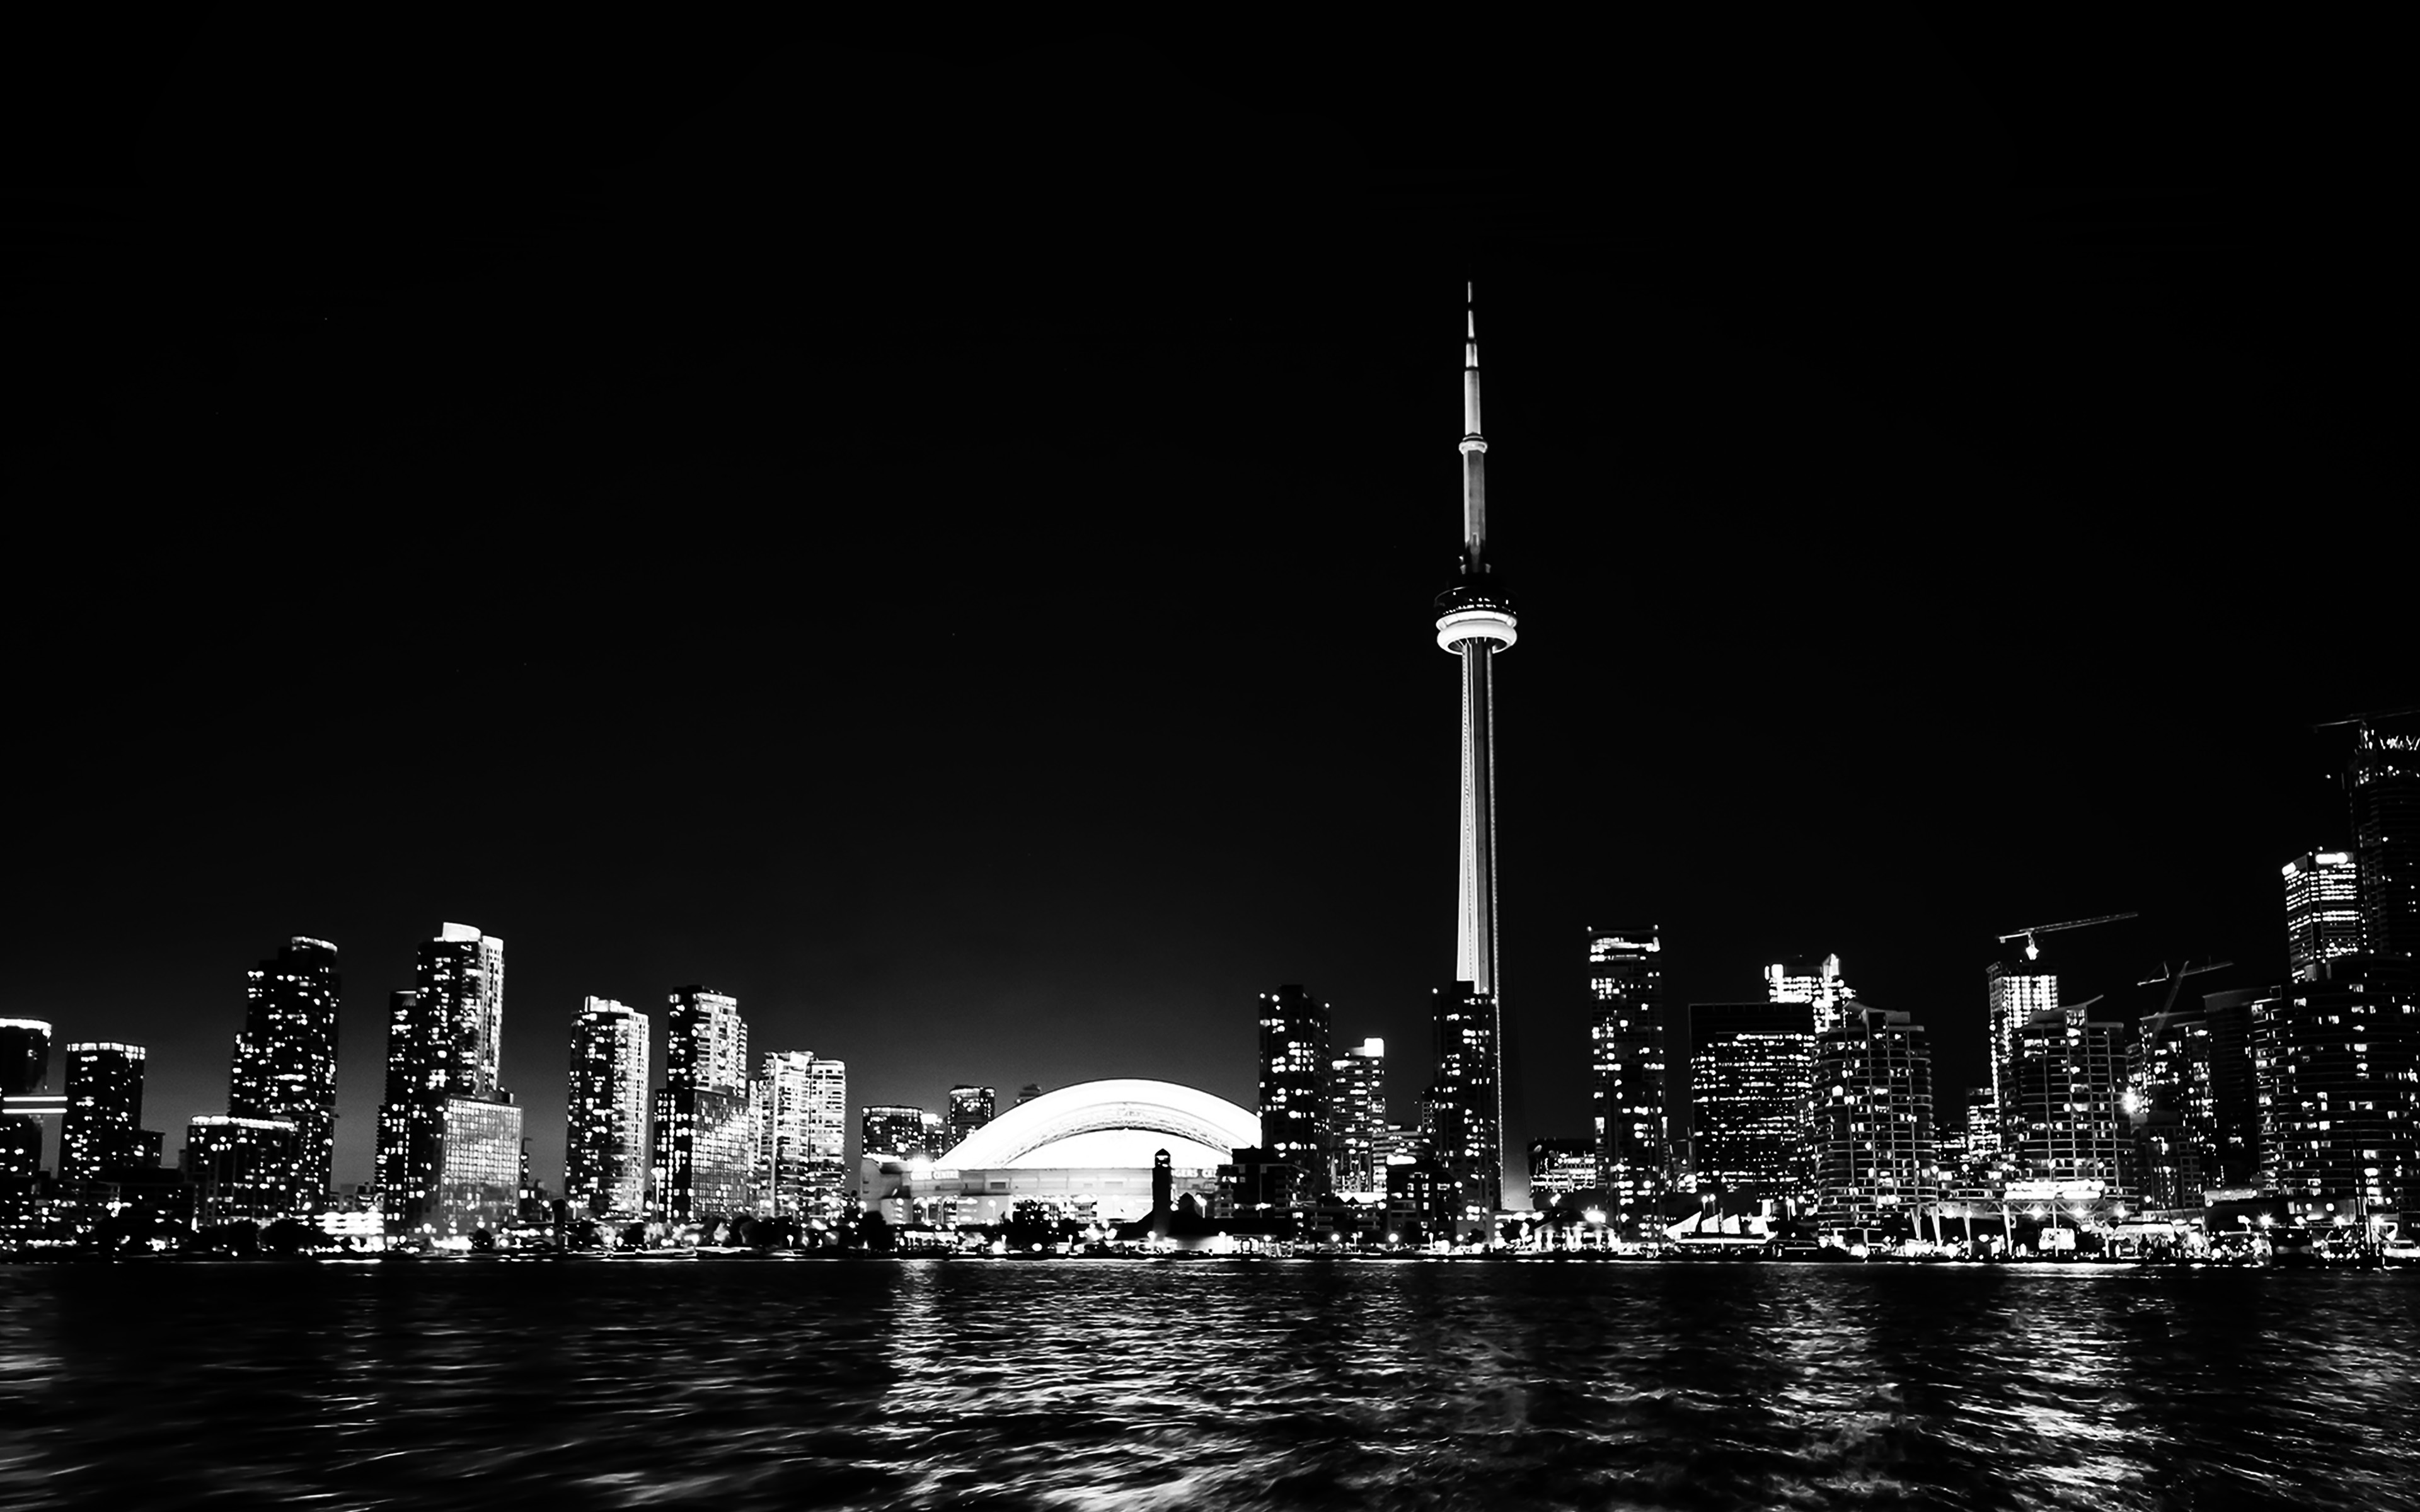 Cute God Images For Wallpaper Mt45 Toronto City Night Missing Tower Dark Cityview Bw